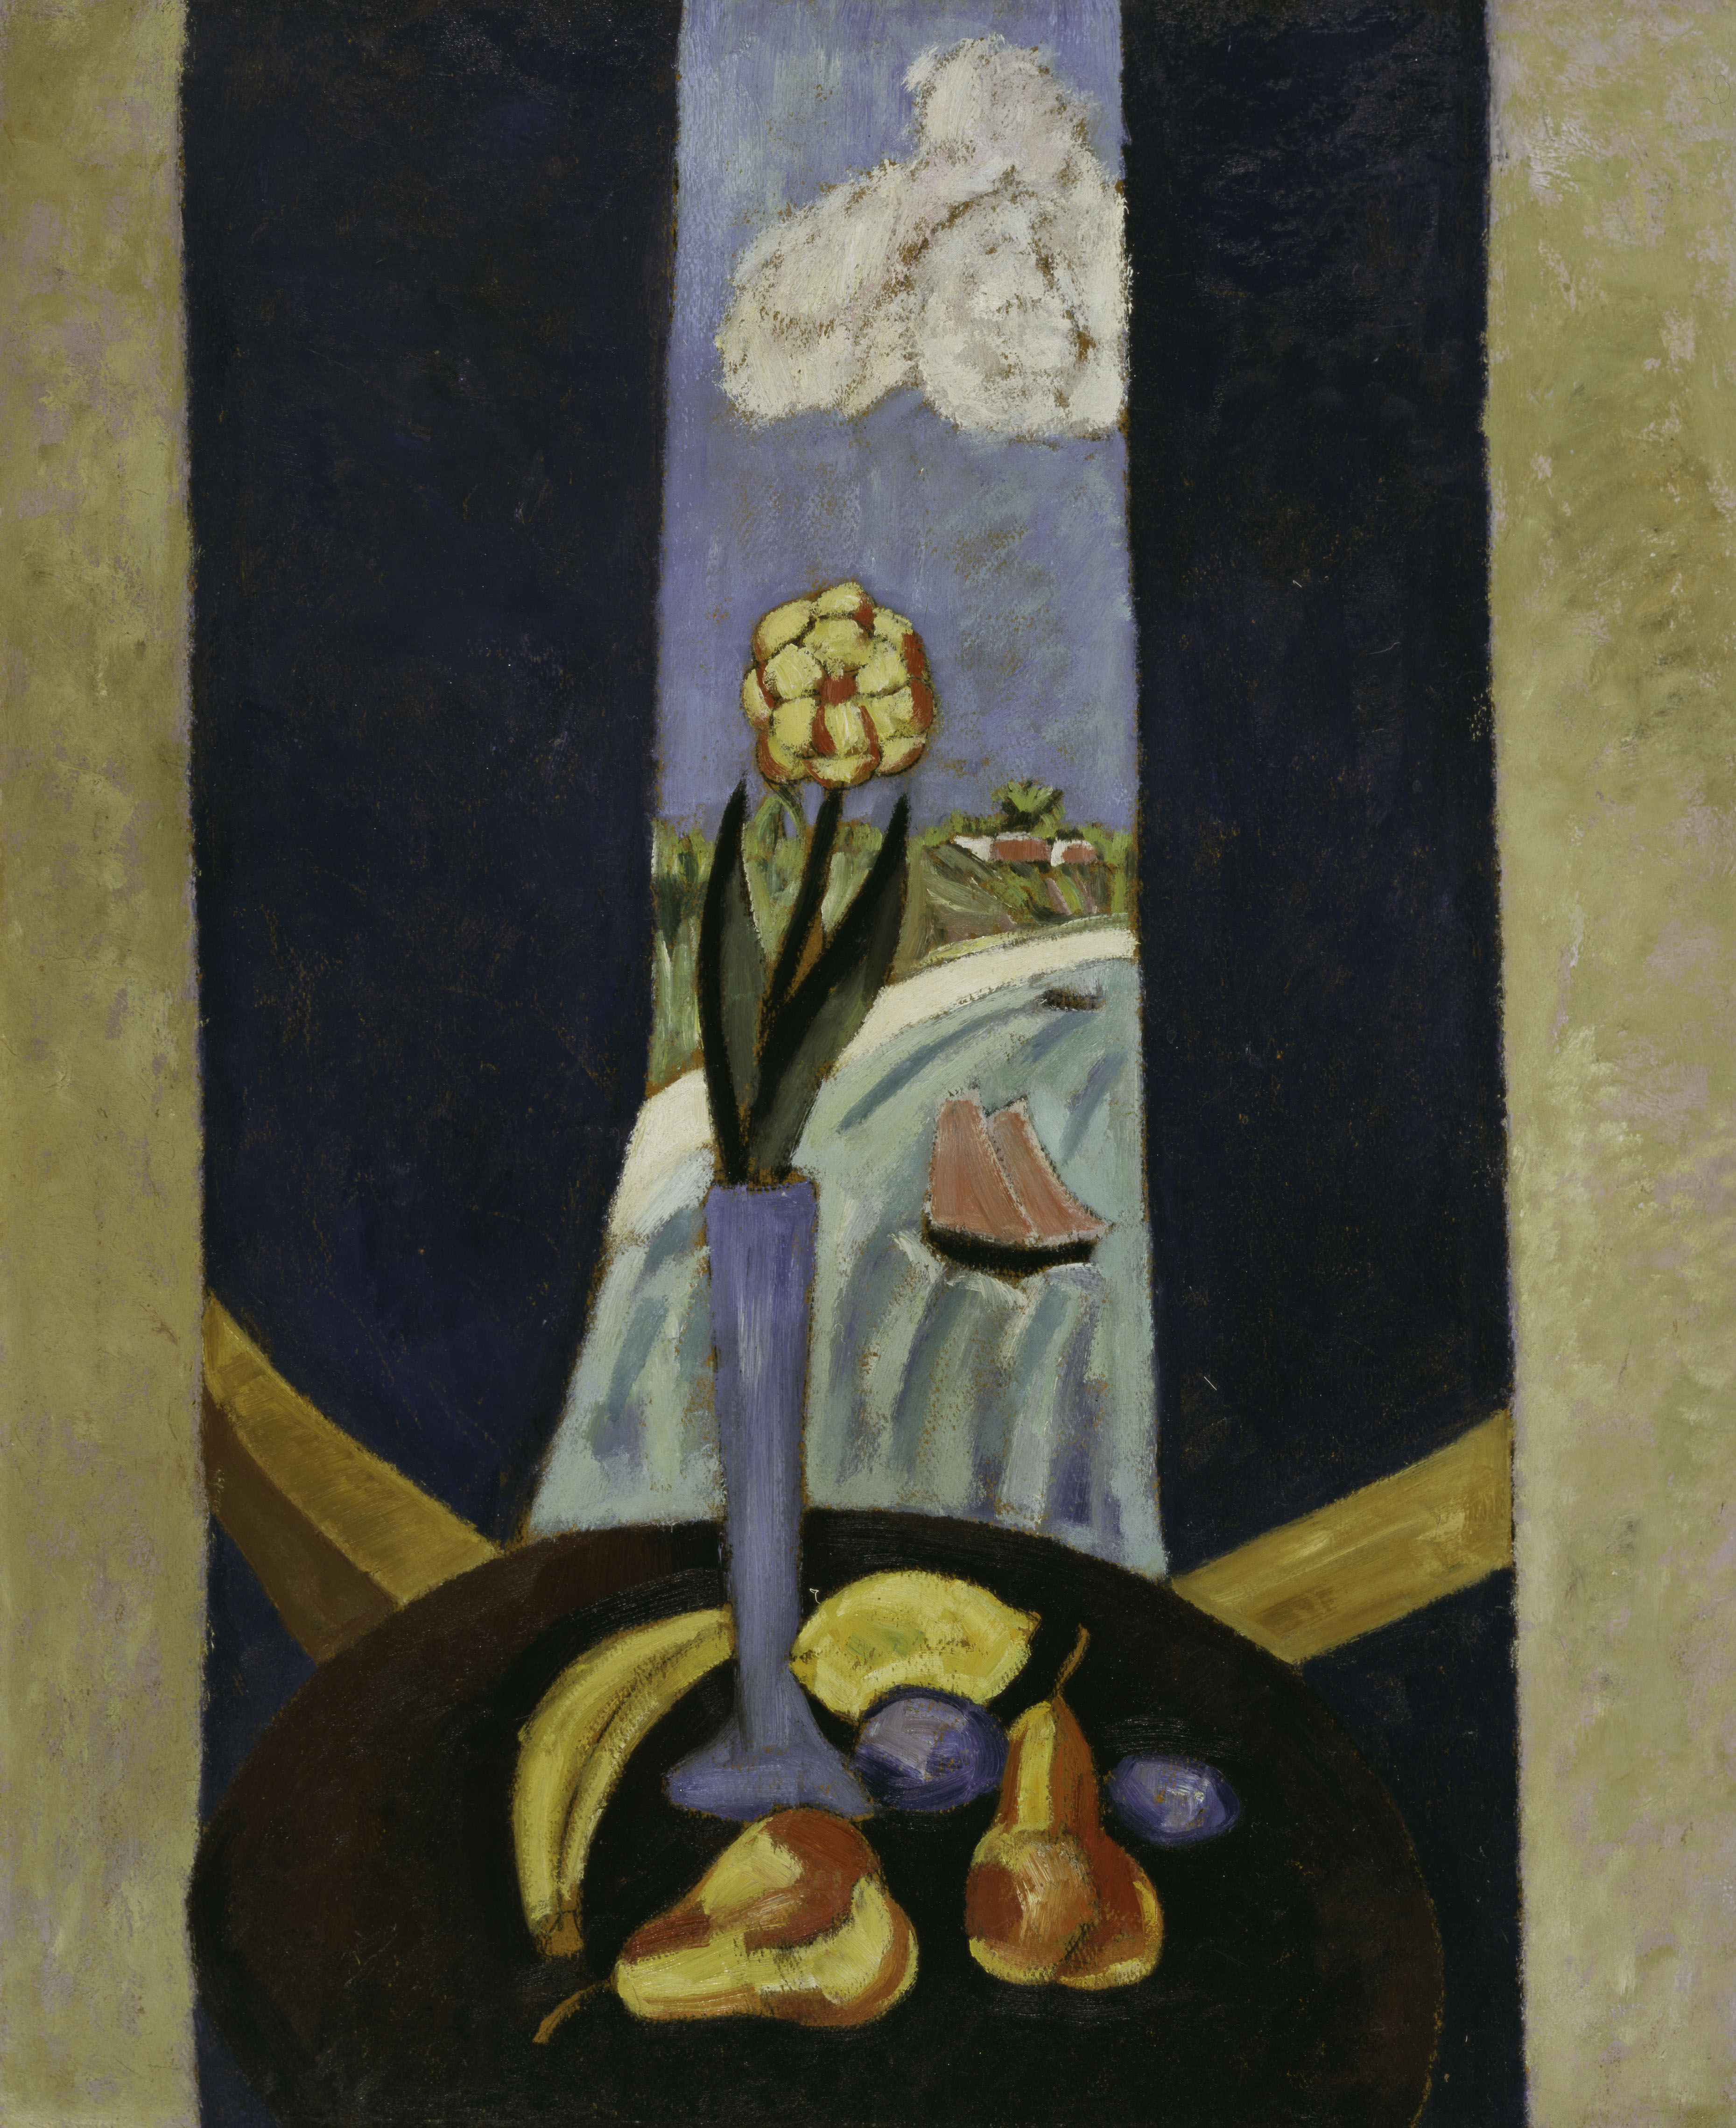 A Bermuda Window in a Semi-Tropic Character by Marsden Hartley